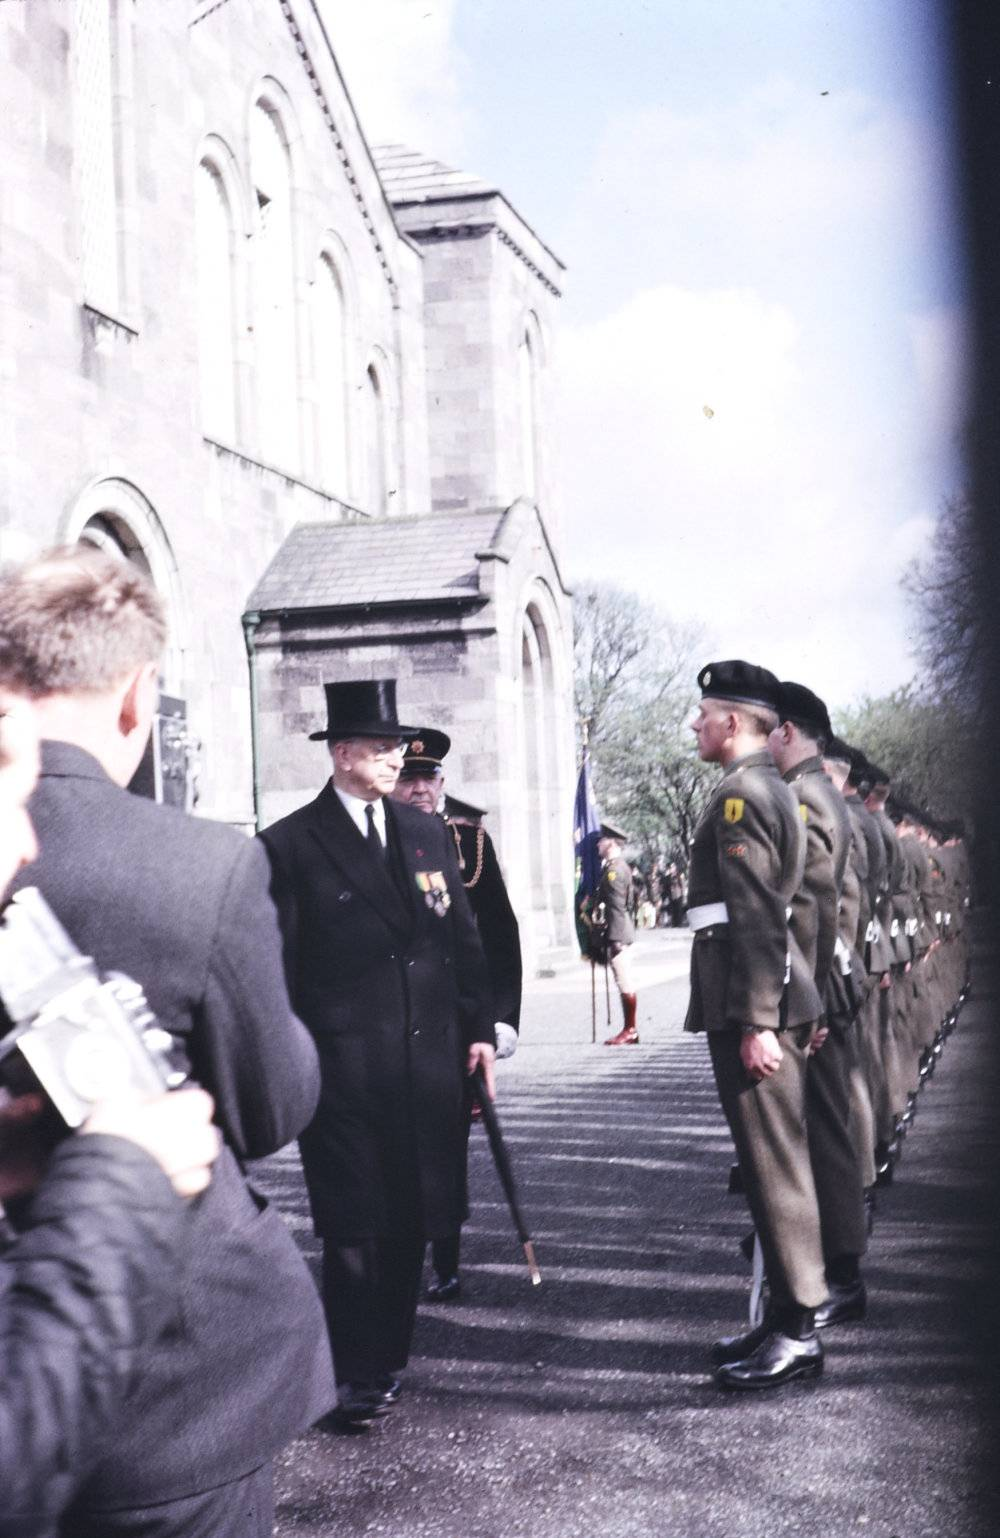 President Eamon de Valera inspects the troops at an anniversary event at Arbour Hill in 1966. National Library of Ireland.